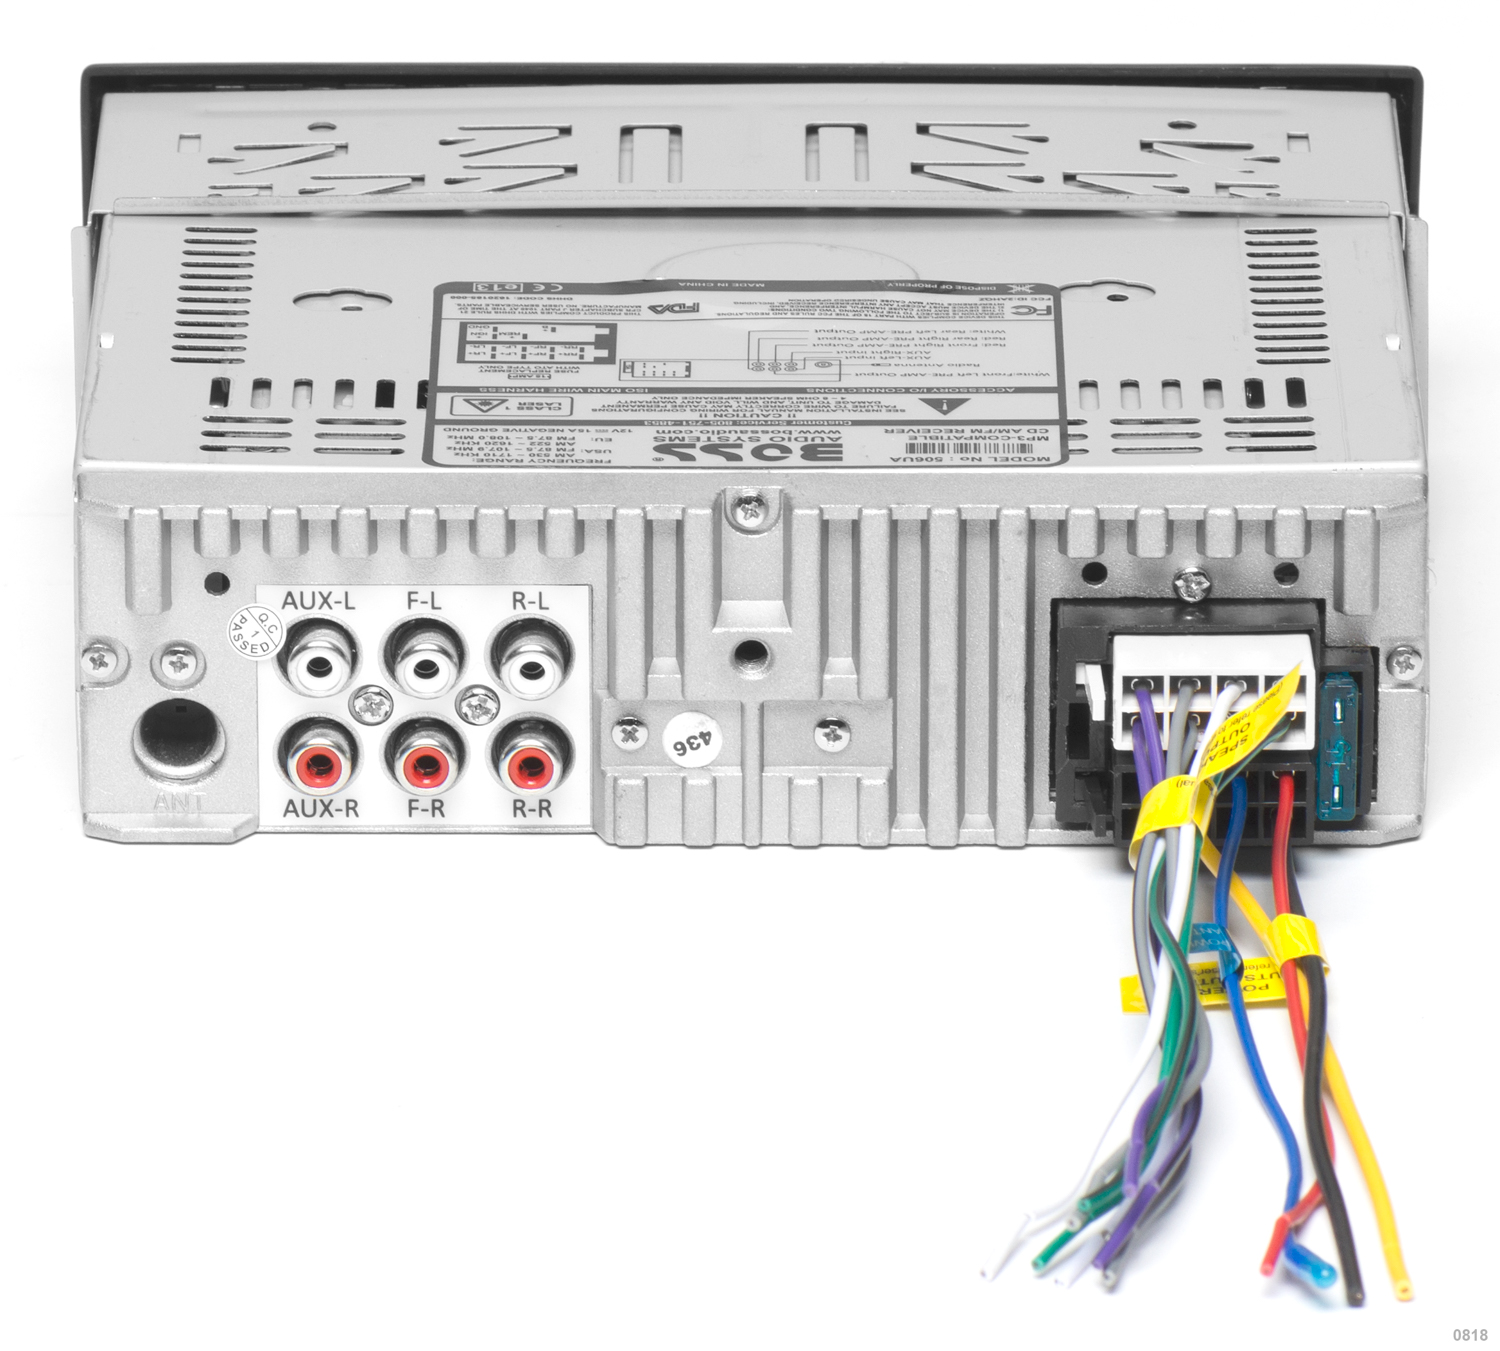 hight resolution of 506ua boss audio systems 506ua rear 506ua boss audio systems boss audio wiring harness at cita asia